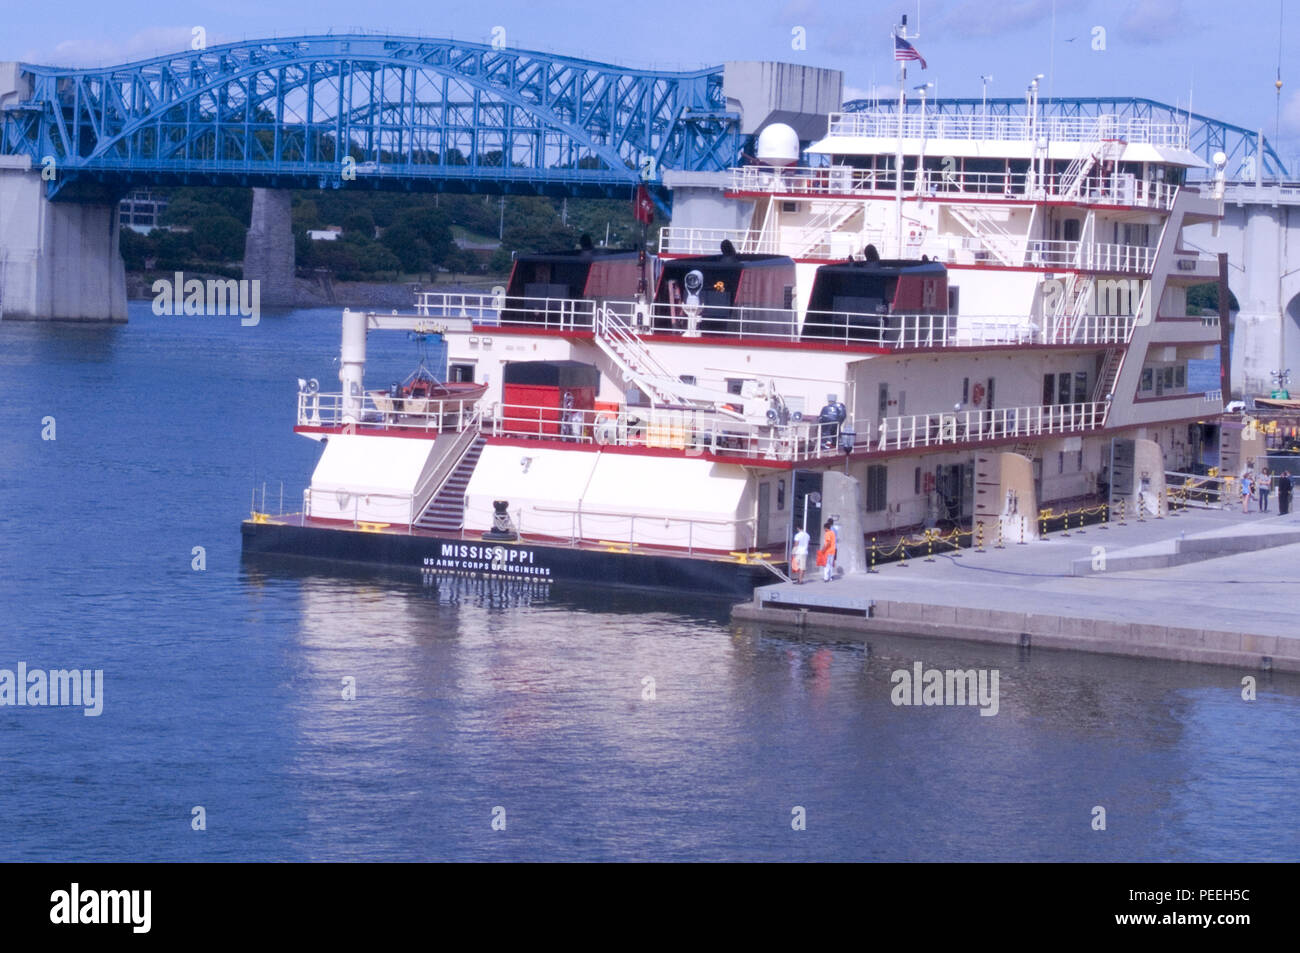 The Motor Vessel Mississippi is docked at Ross's Landing in Chattanooga, Tenn., Aug. 7, 2015. The M/V Mississippi spends more than 90 percent of its time as a working towboat, moving barges, equipment and supplies on the lower Mississippi River. The M/V Mississippi, built in 1993 by Halter Marine, is the fifth Army Corps of Engineers towboat to bear the name. It is the largest diesel towboat in the United States at 241-feet long, 58-feet wide and five stories high. Three 2,100-horsepower diesel engines power the vessel. (USACE photo by Leon Roberts) Stock Photo